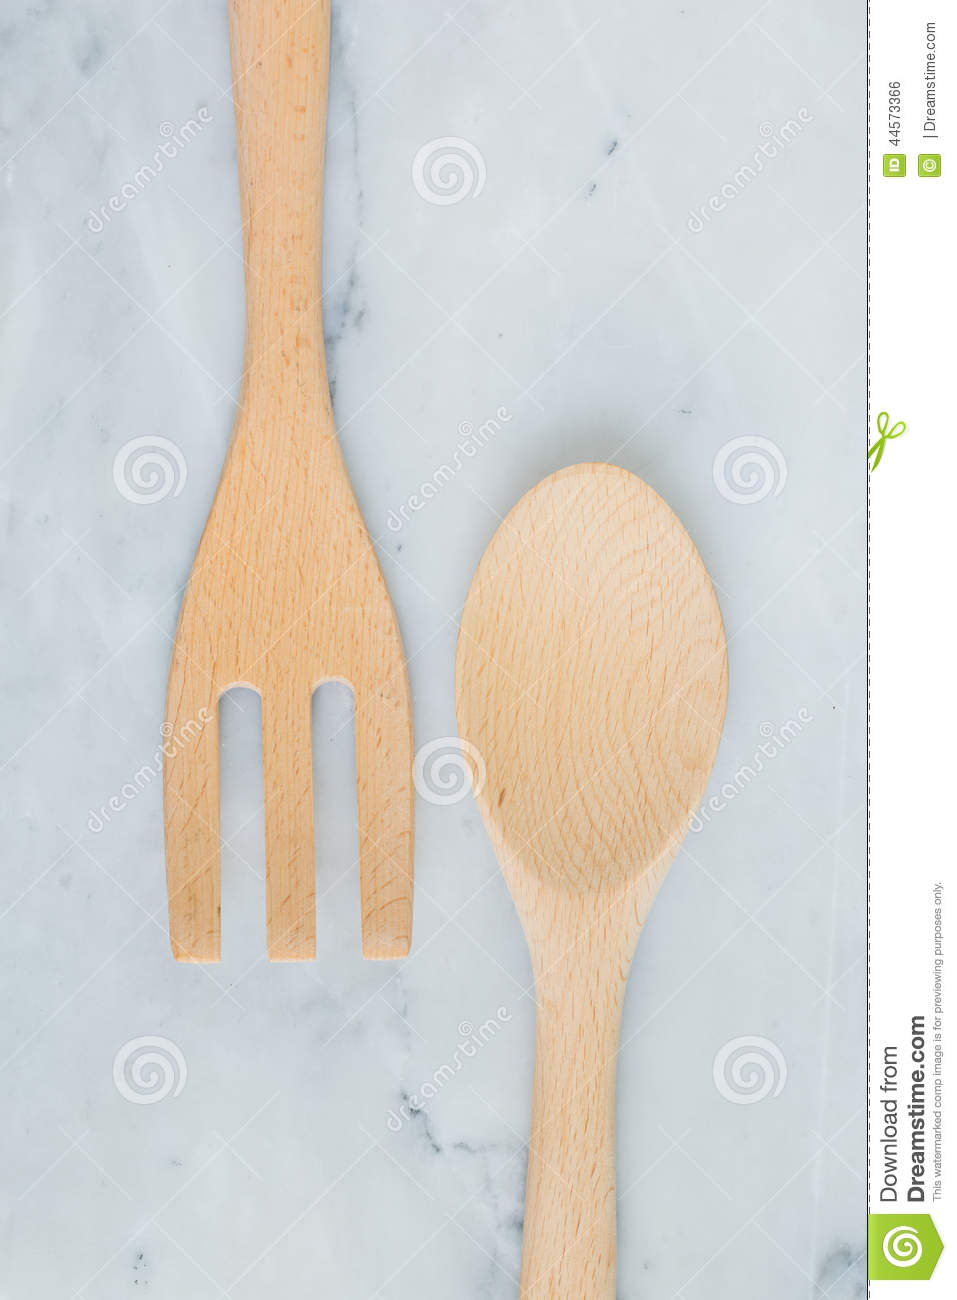 Wooden kitchen utensils stock photo image 44573366 for Table utensils